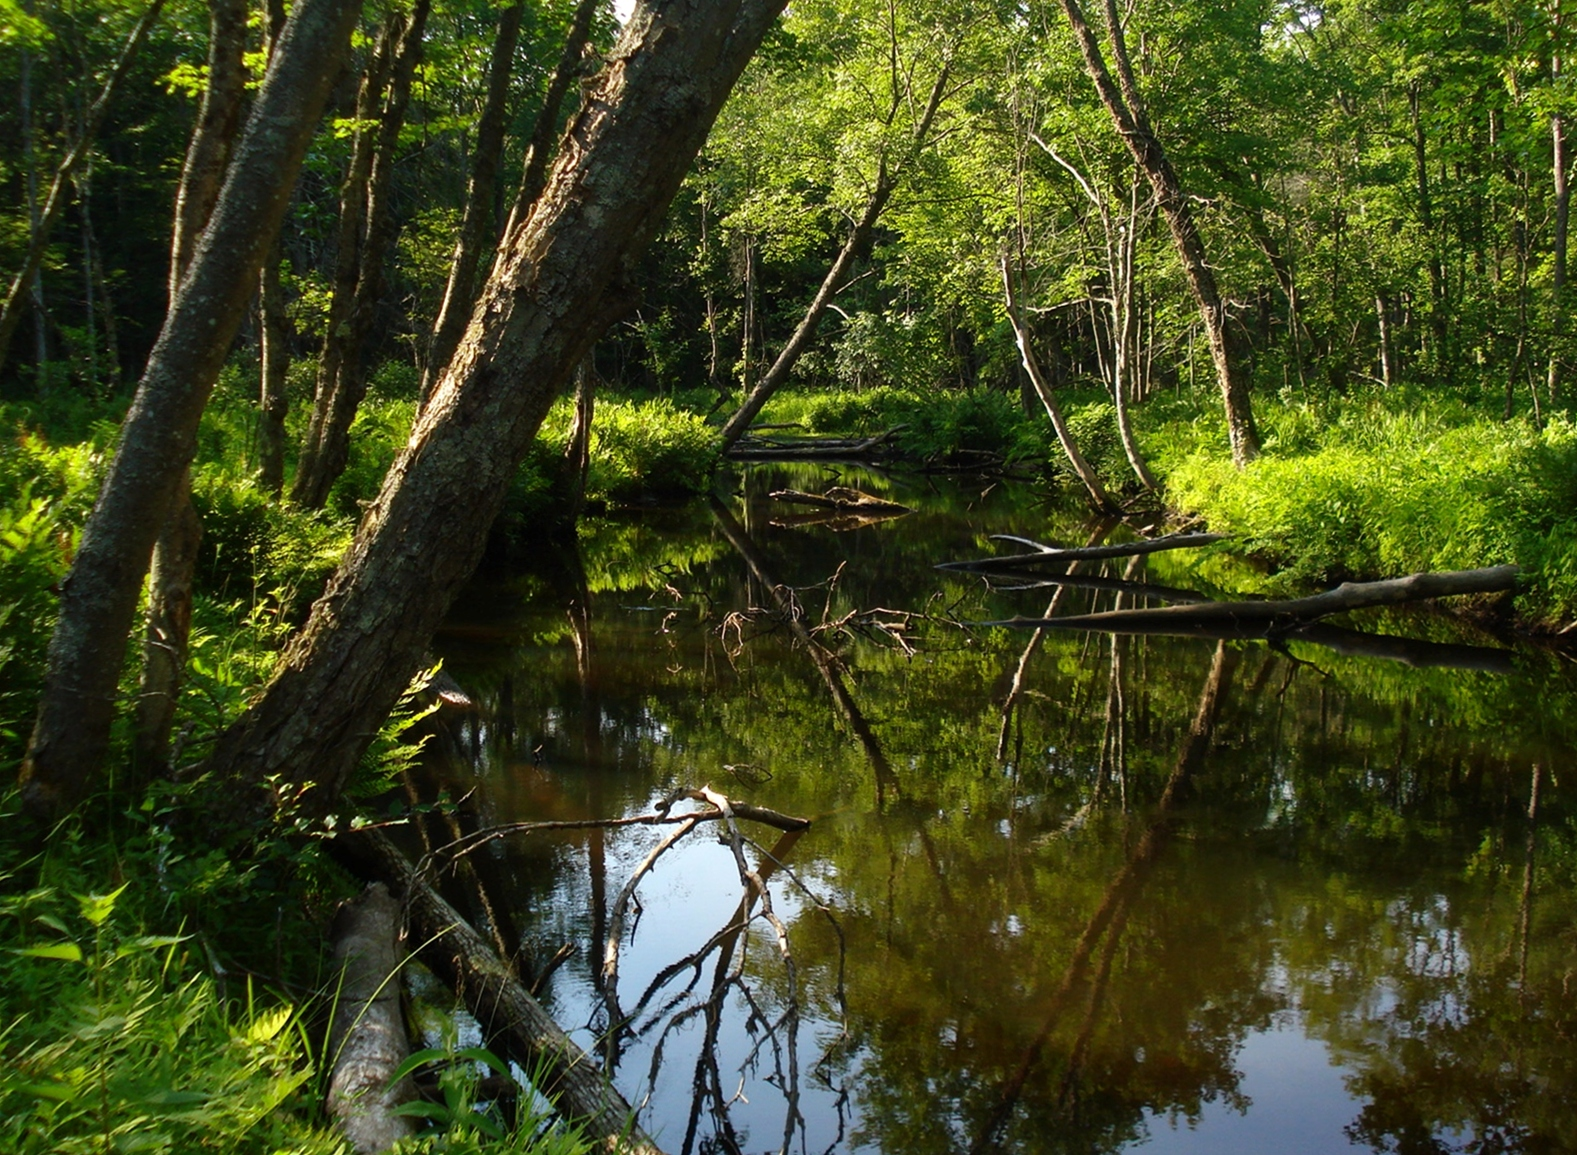 New york state wildlife management areas wikipedia for Nysdec fishing regulations